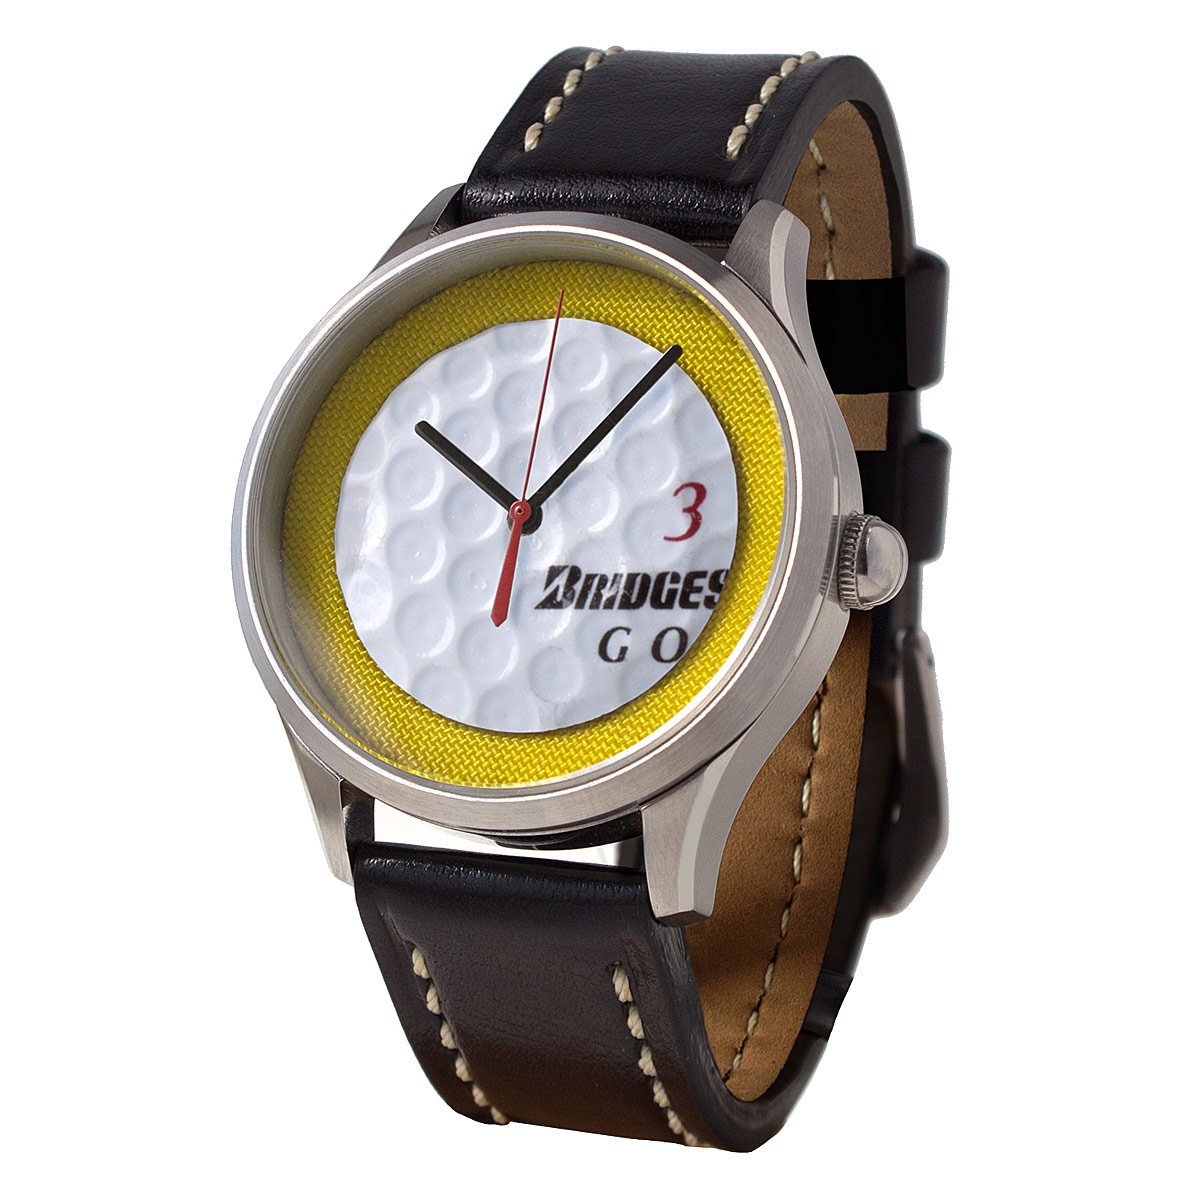 are chic with watches ready for your ll resolutions be sporty this you actually that watch found bintroo